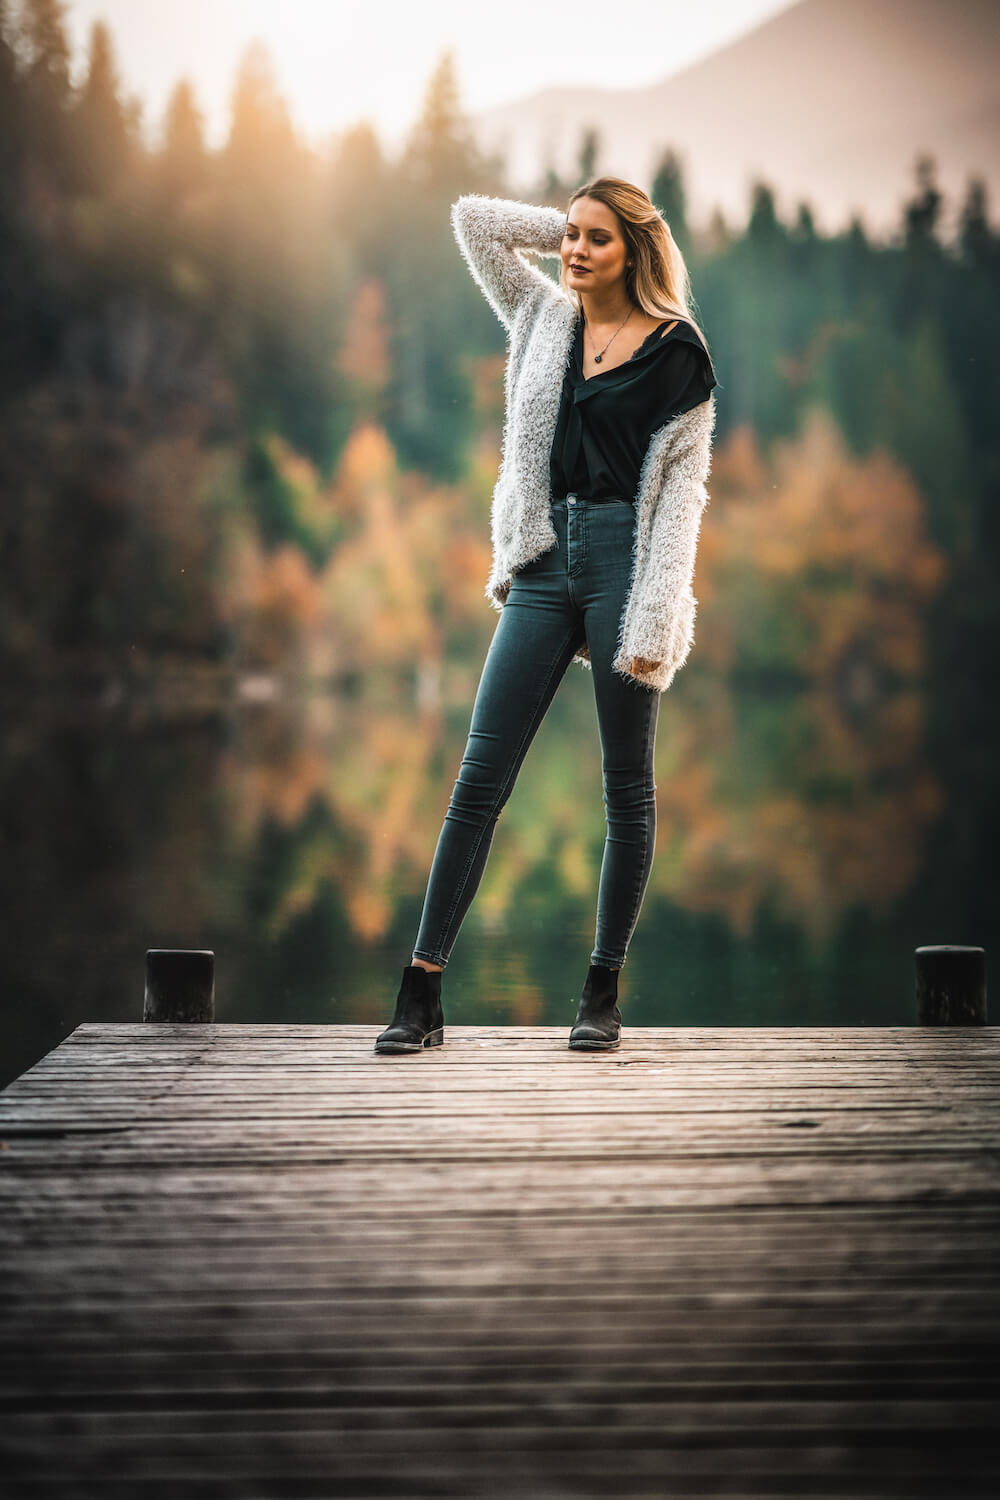 4one Foto-Shooting Fotografie Crestasee Herbst Model 1